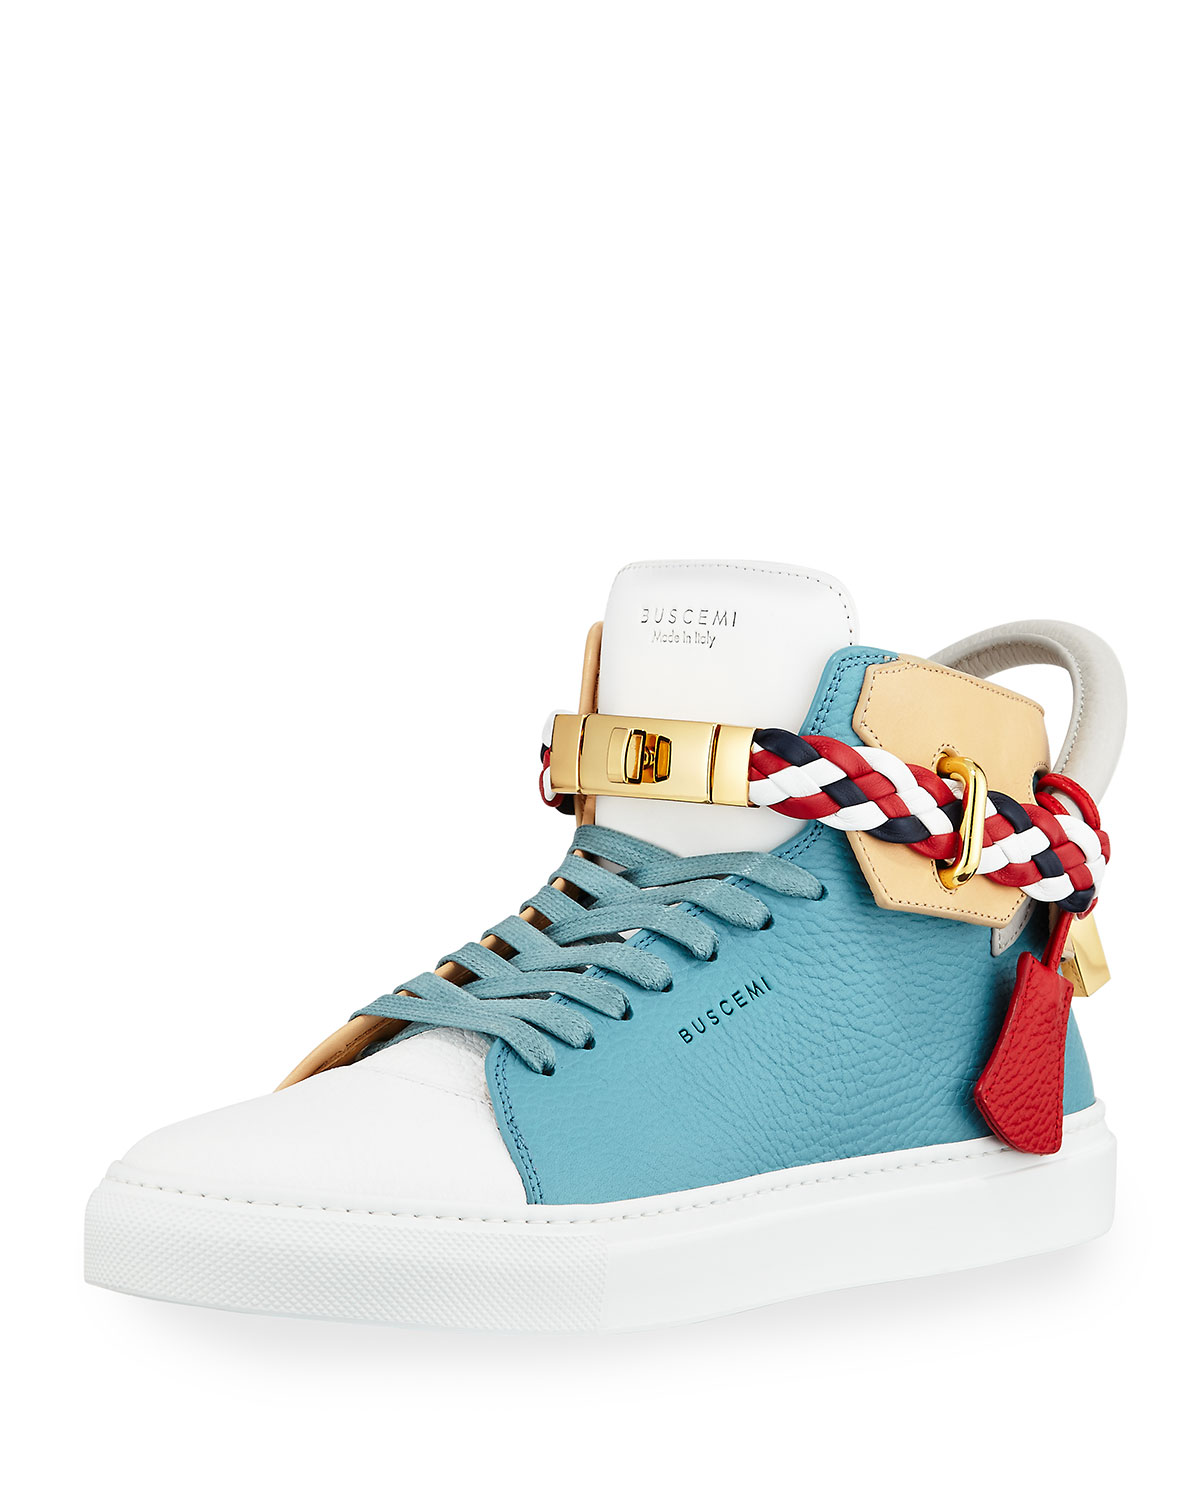 100mm Mix High-Top Sneakers, Oxygen